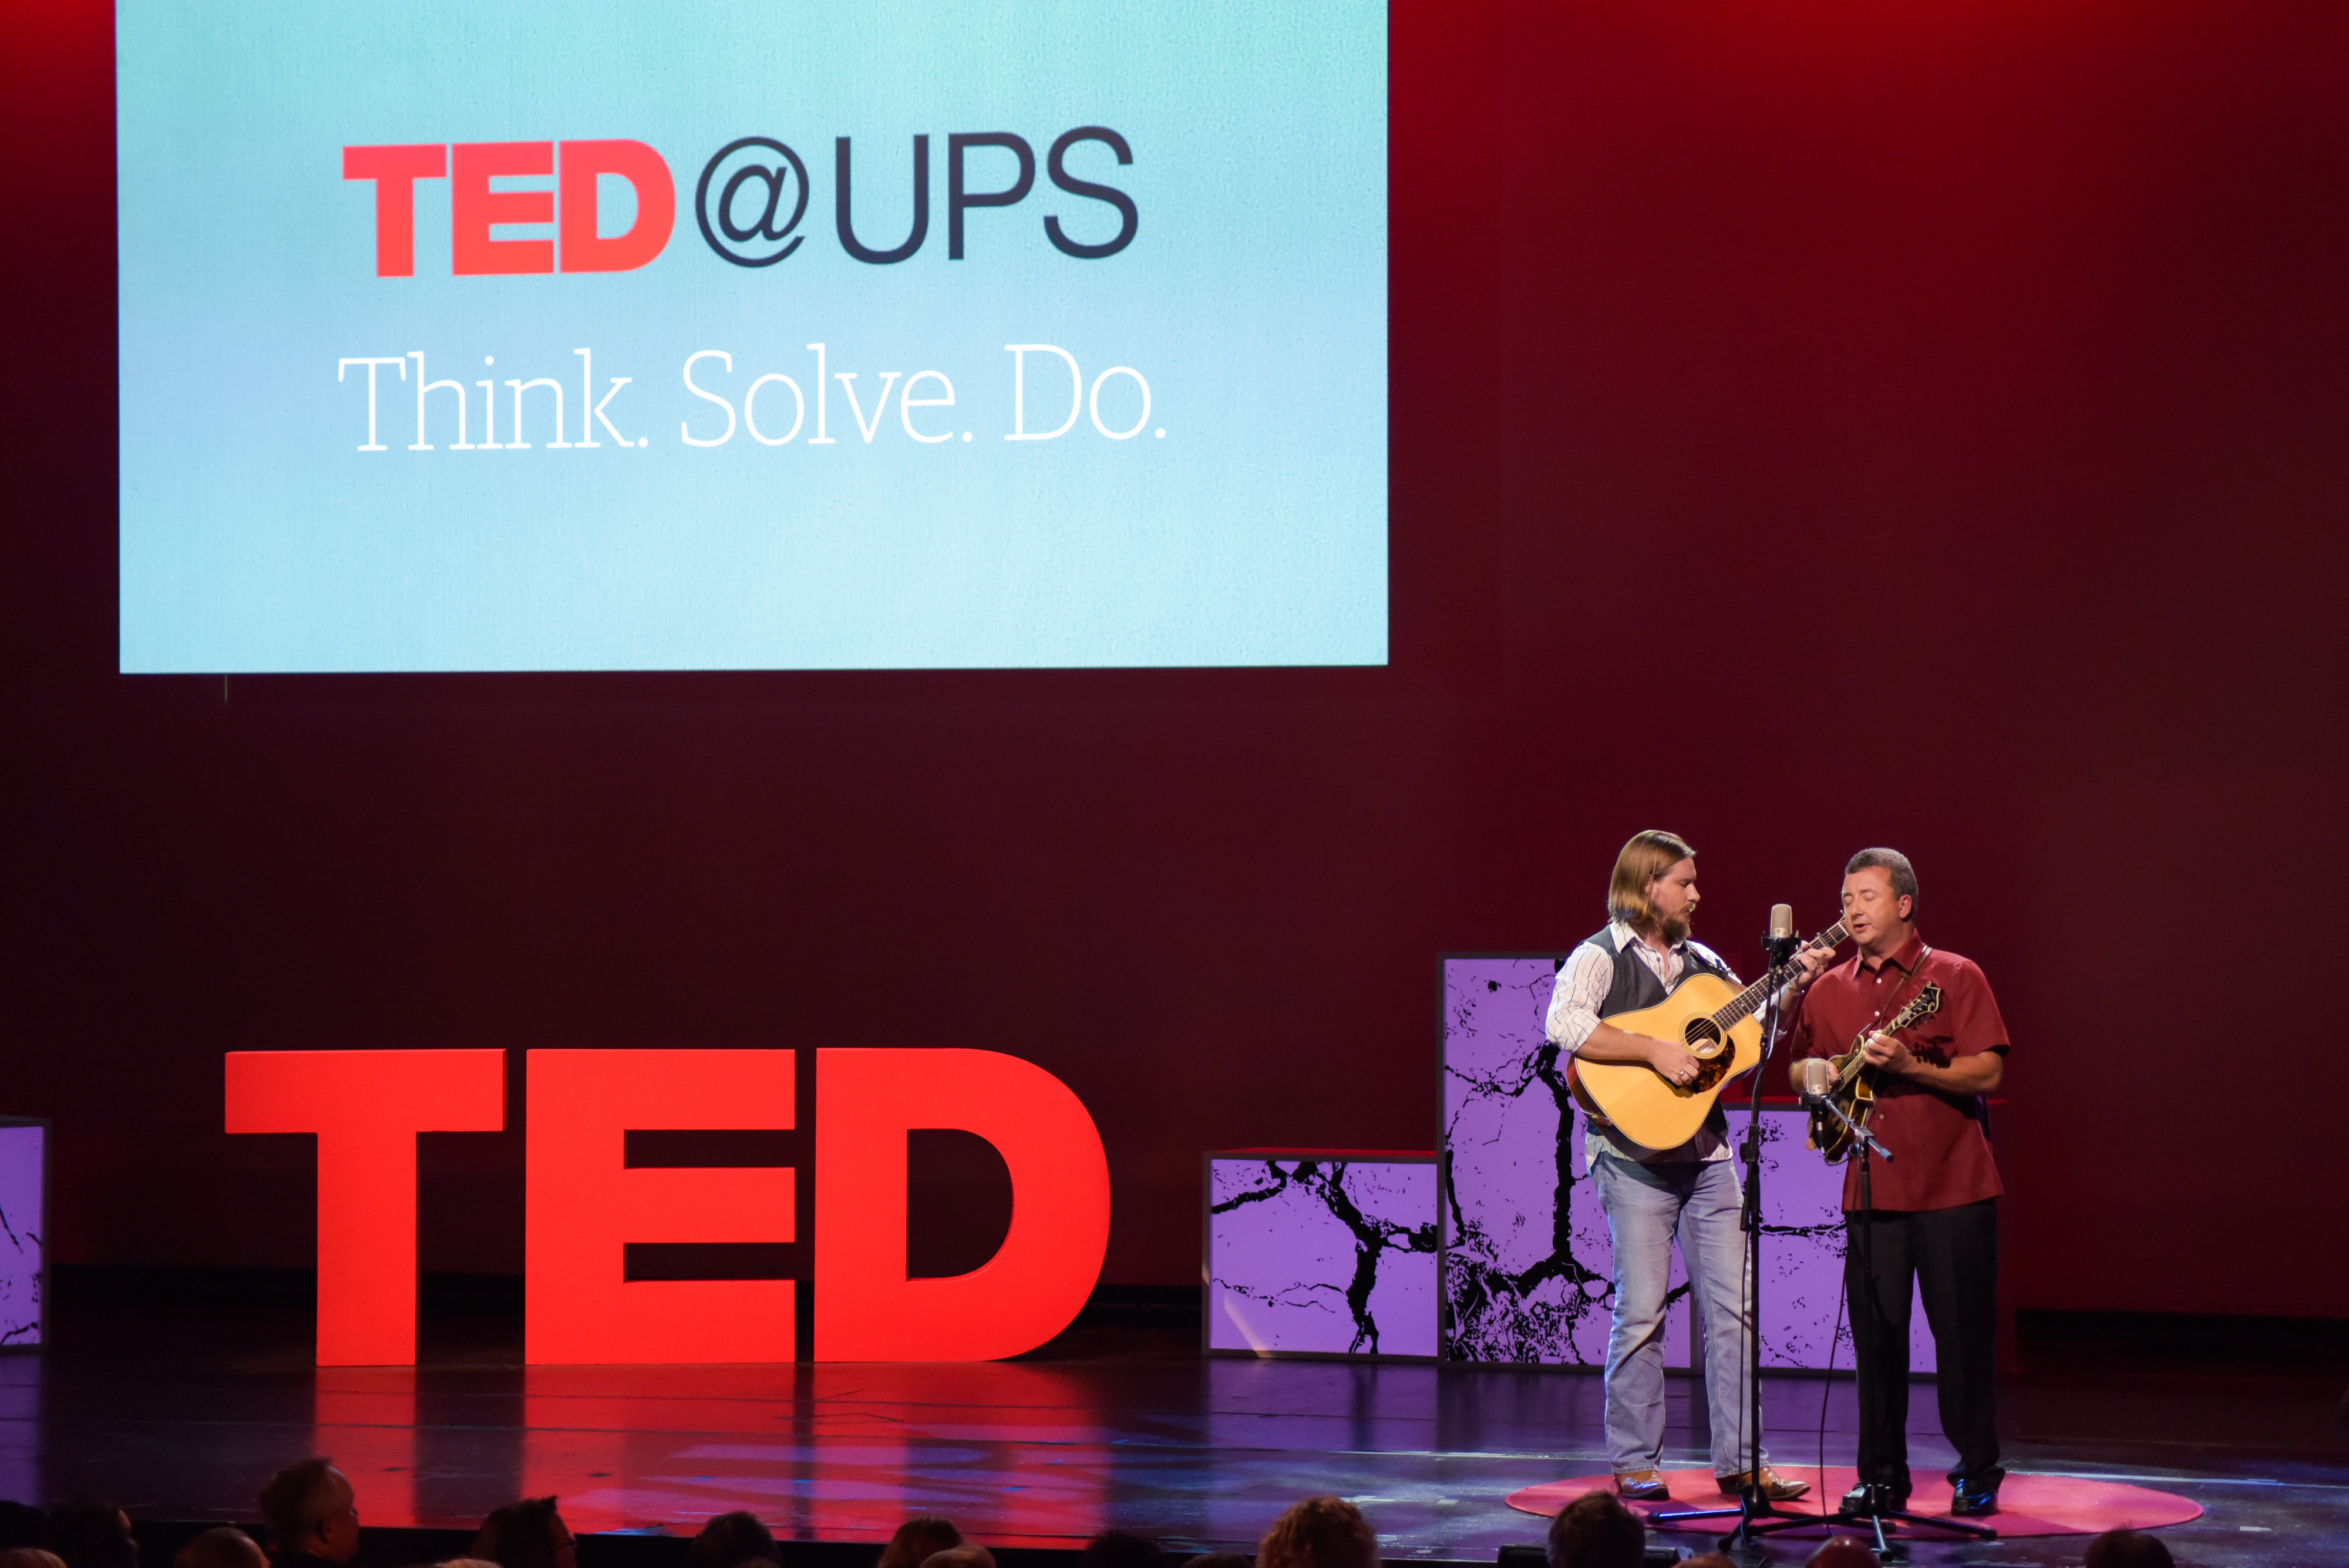 Johnny Staats is a UPS driver. And he's also a bluegrass songwriter. He performed in both sessions with members of his band, Johnny Staats and the Delivery Boys. Photo: Mark Tioxon/TED